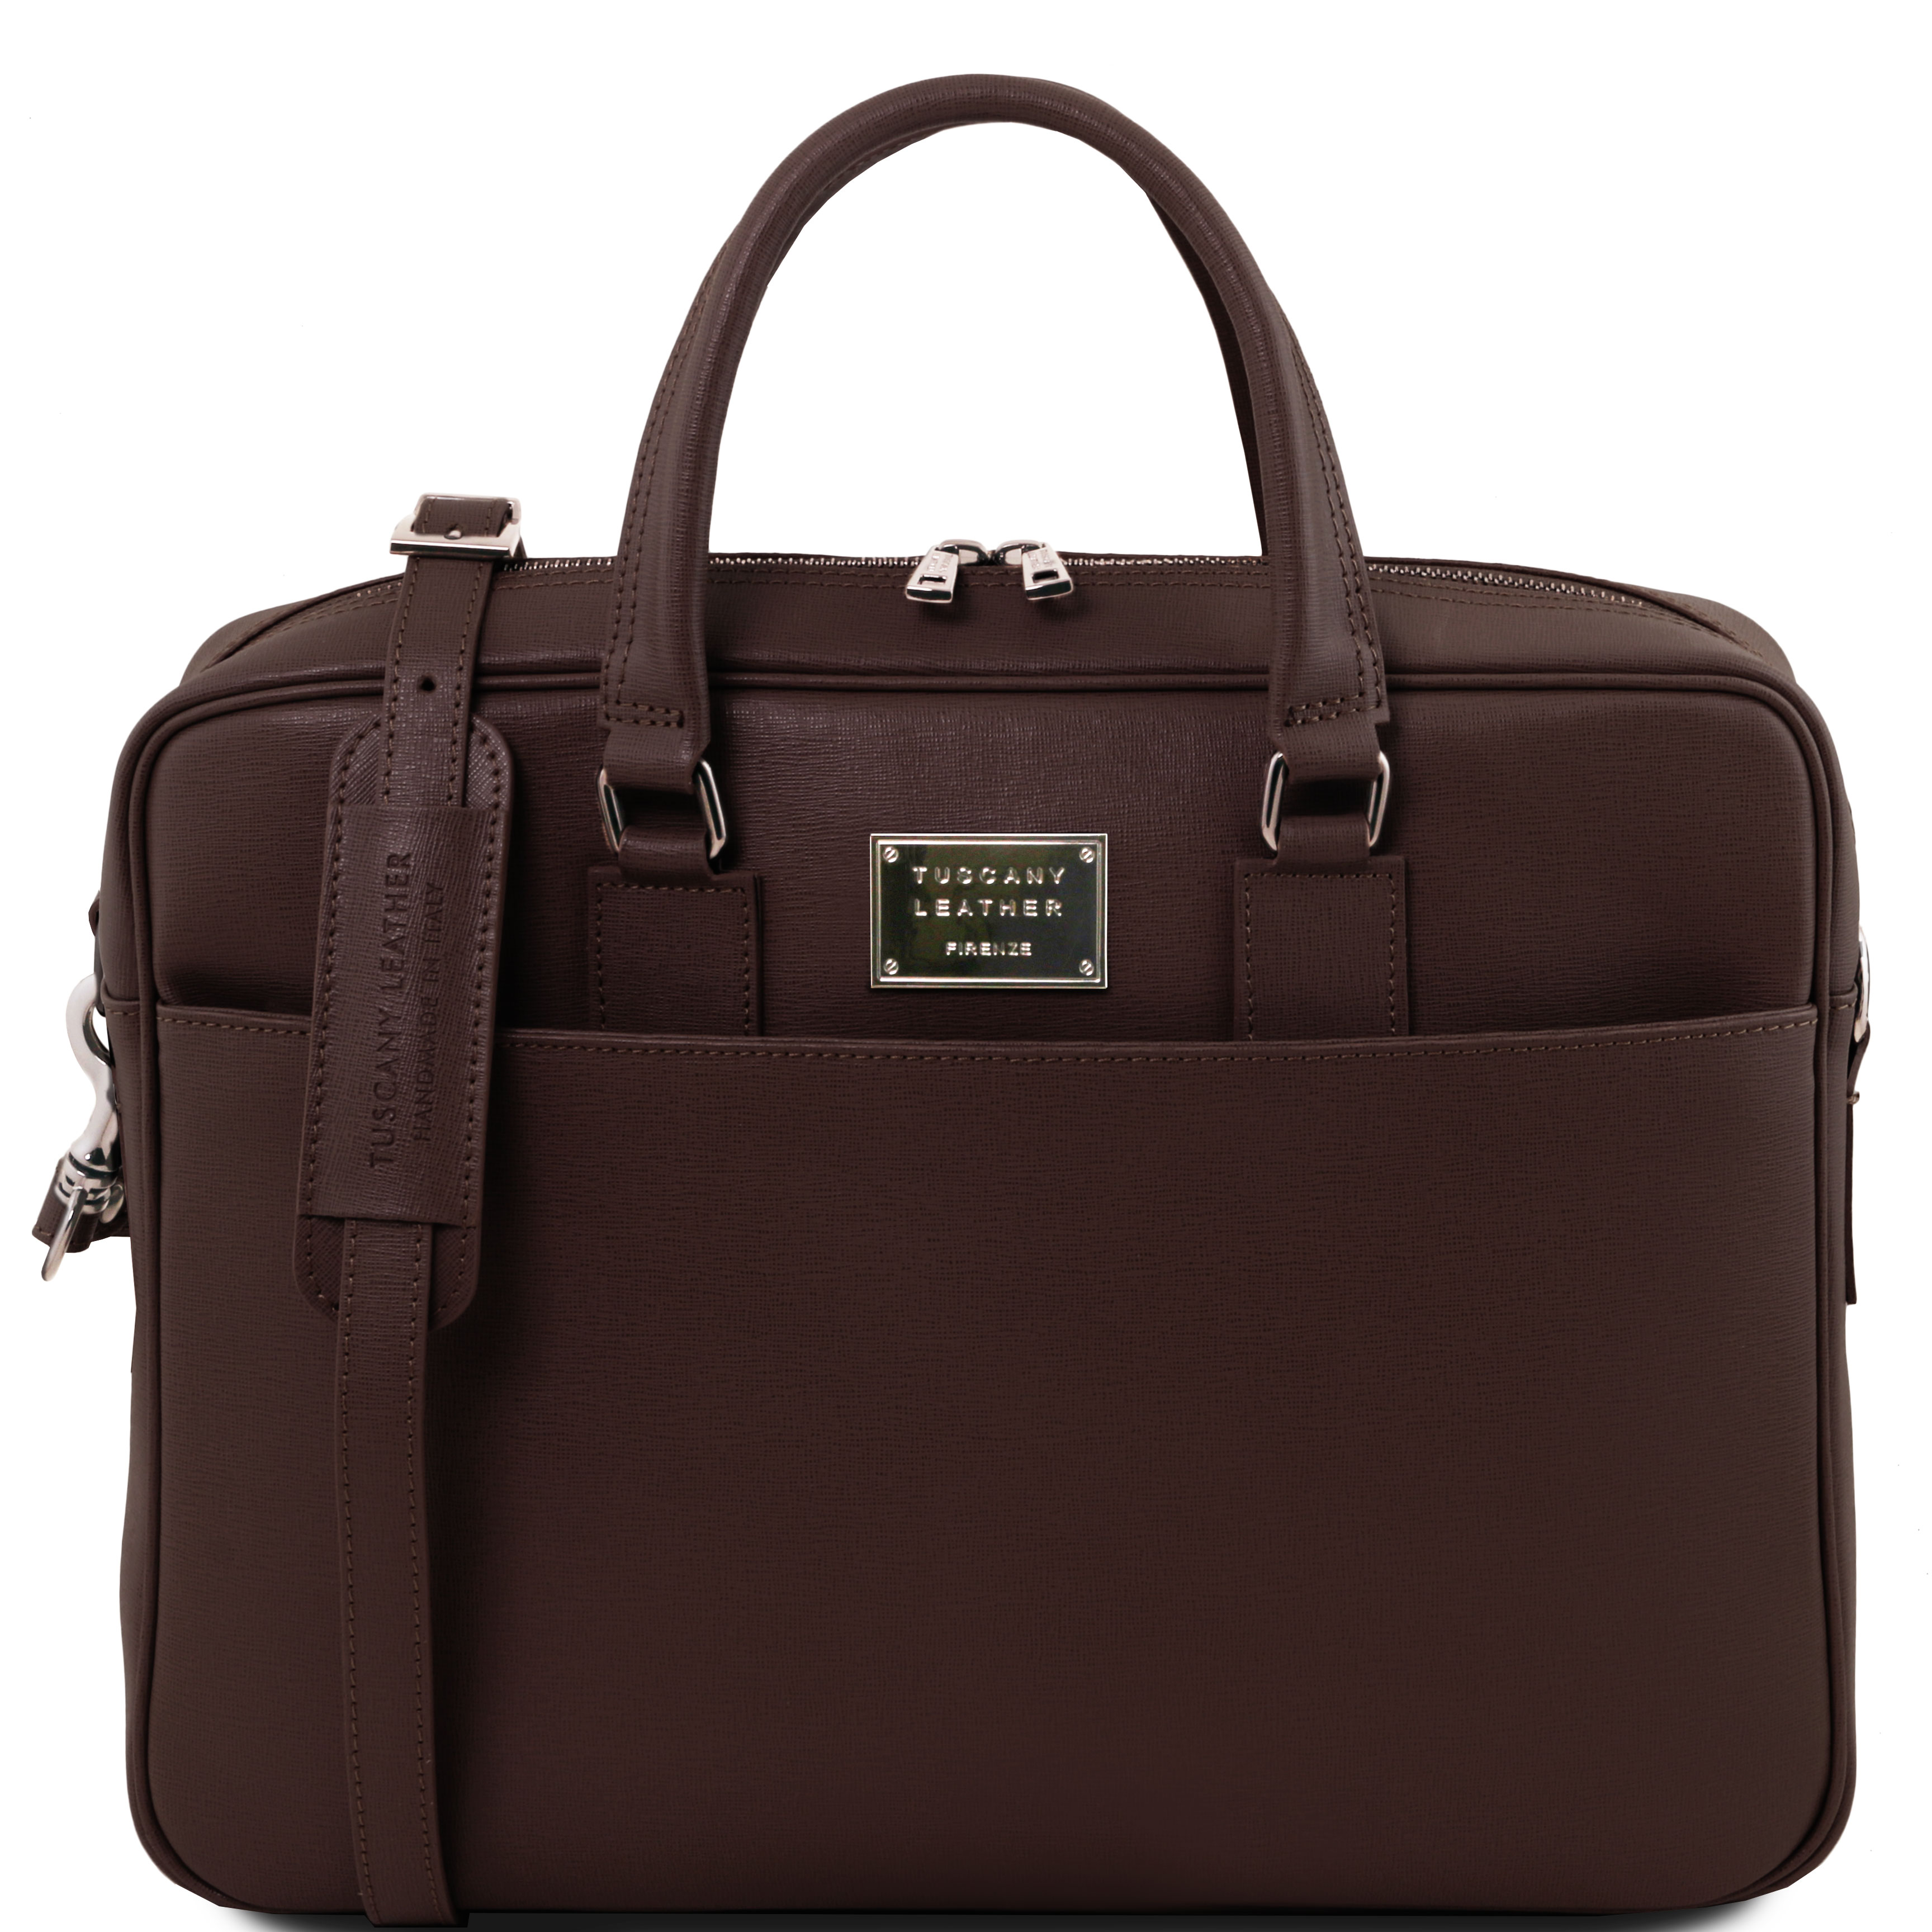 Geanta Tuscany Leather din piele maro inchis laptop saffiano